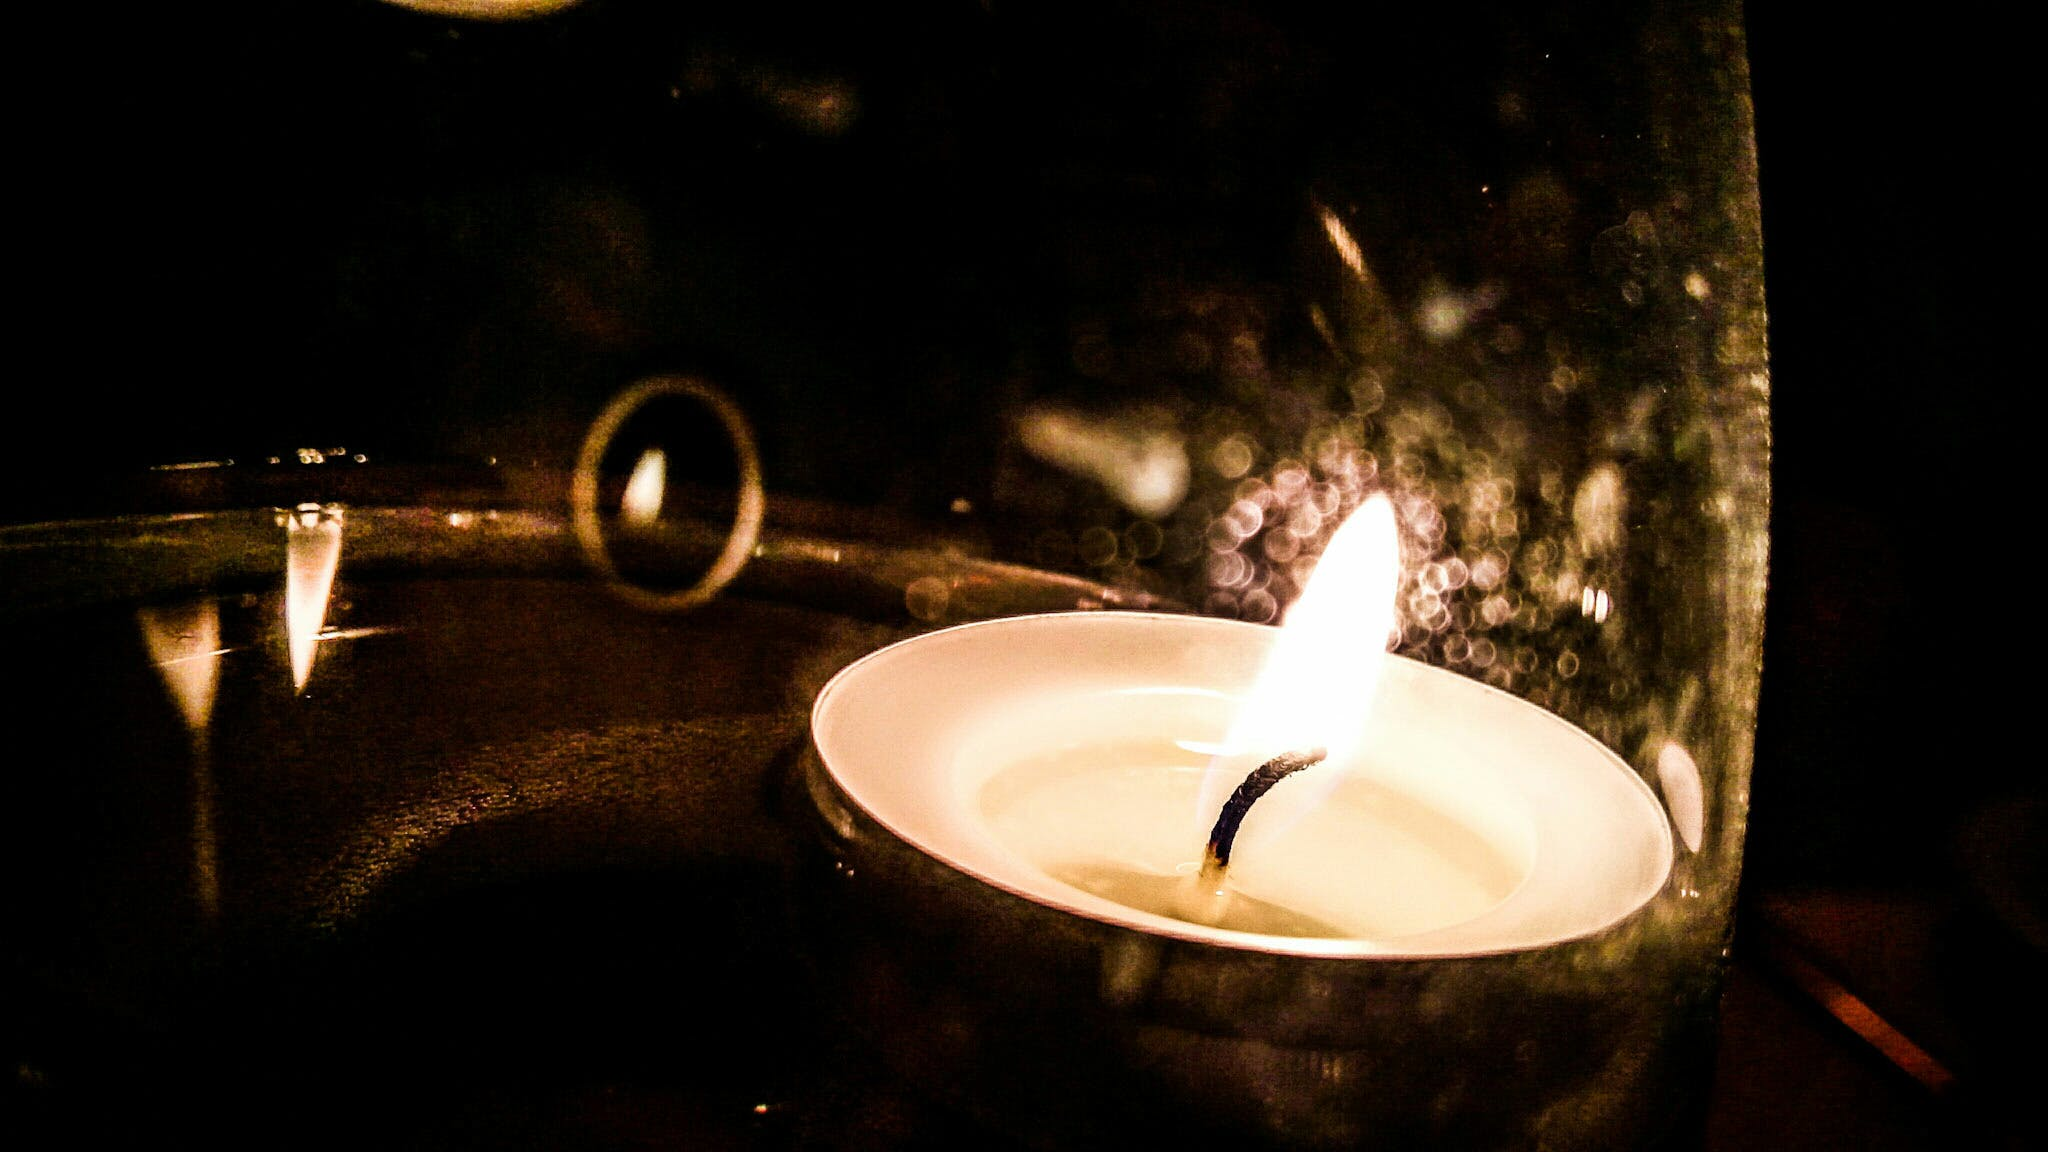 Free stock photo of light, candle